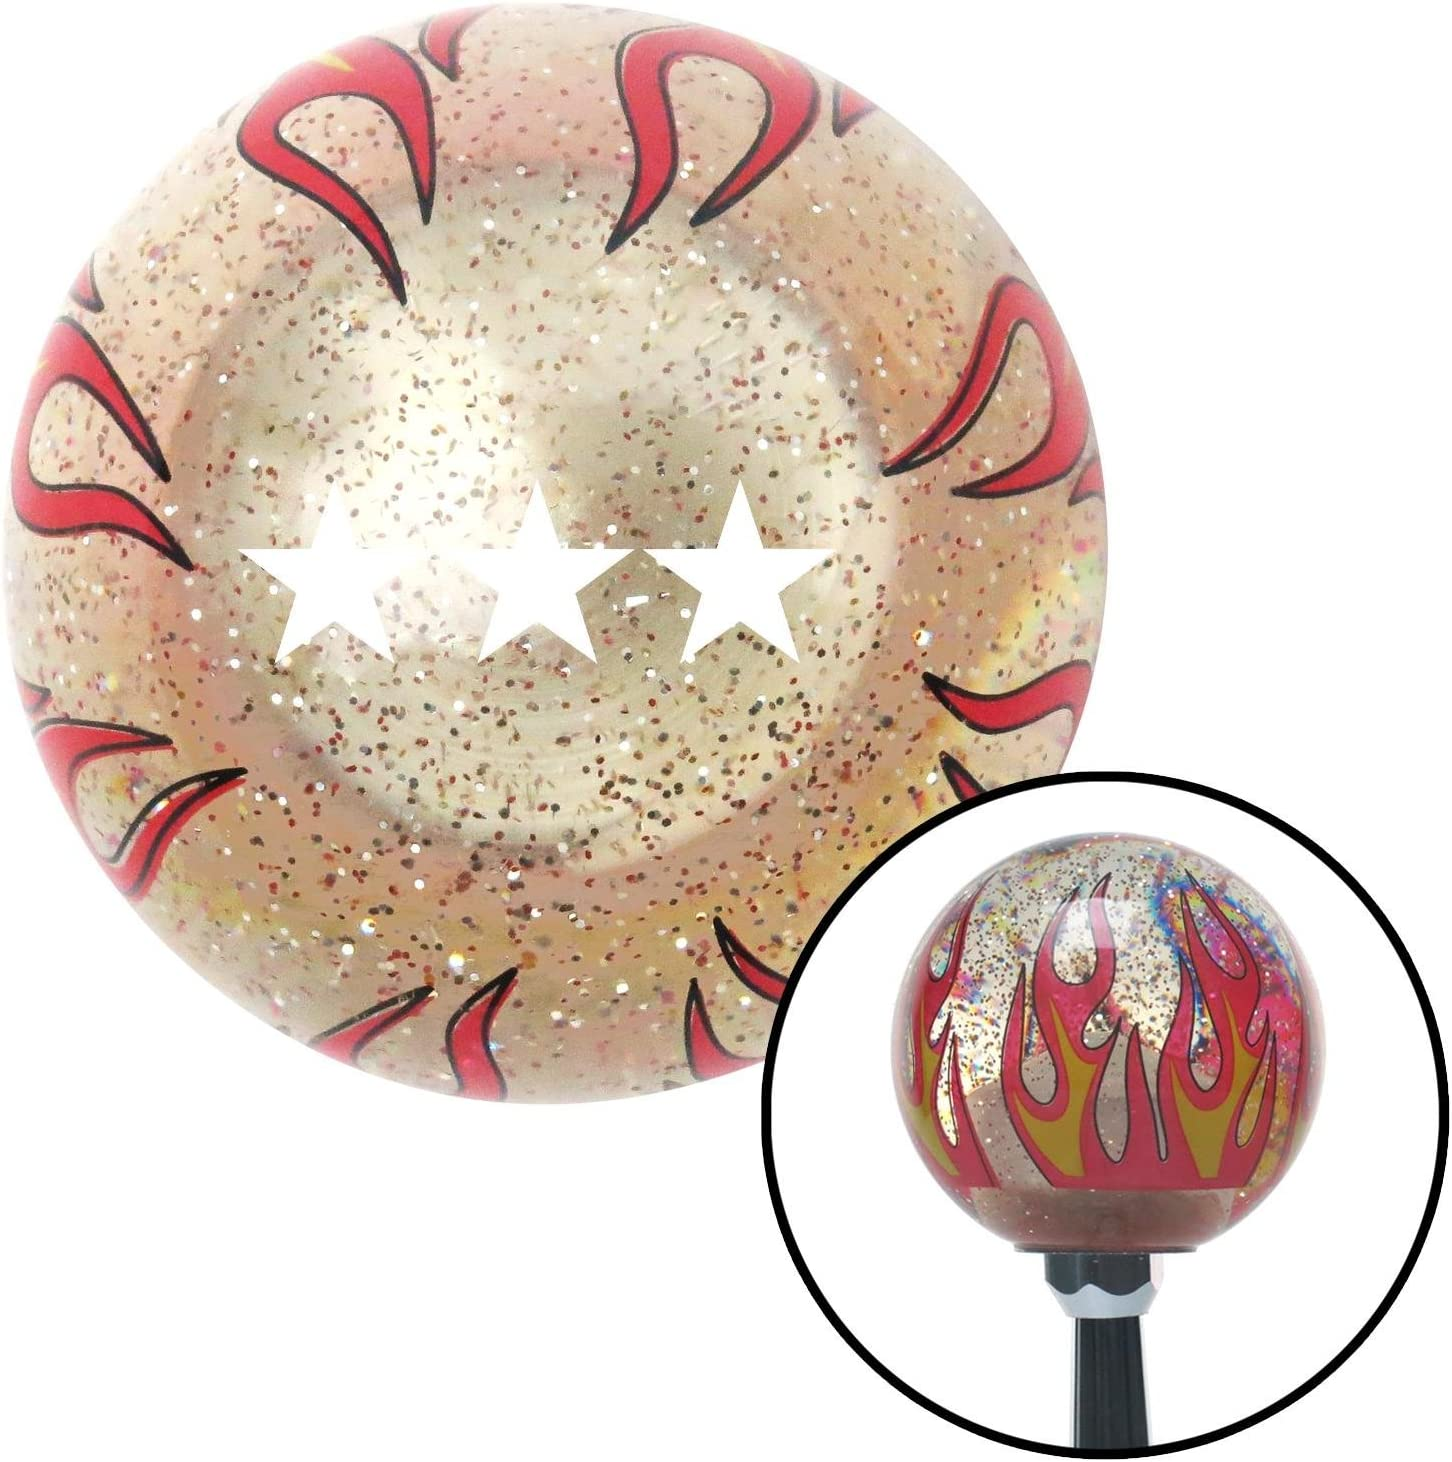 White Officer 09 - Lt. General American Shifter 229667 Clear Flame Metal Flake Shift Knob with M16 x 1.5 Insert